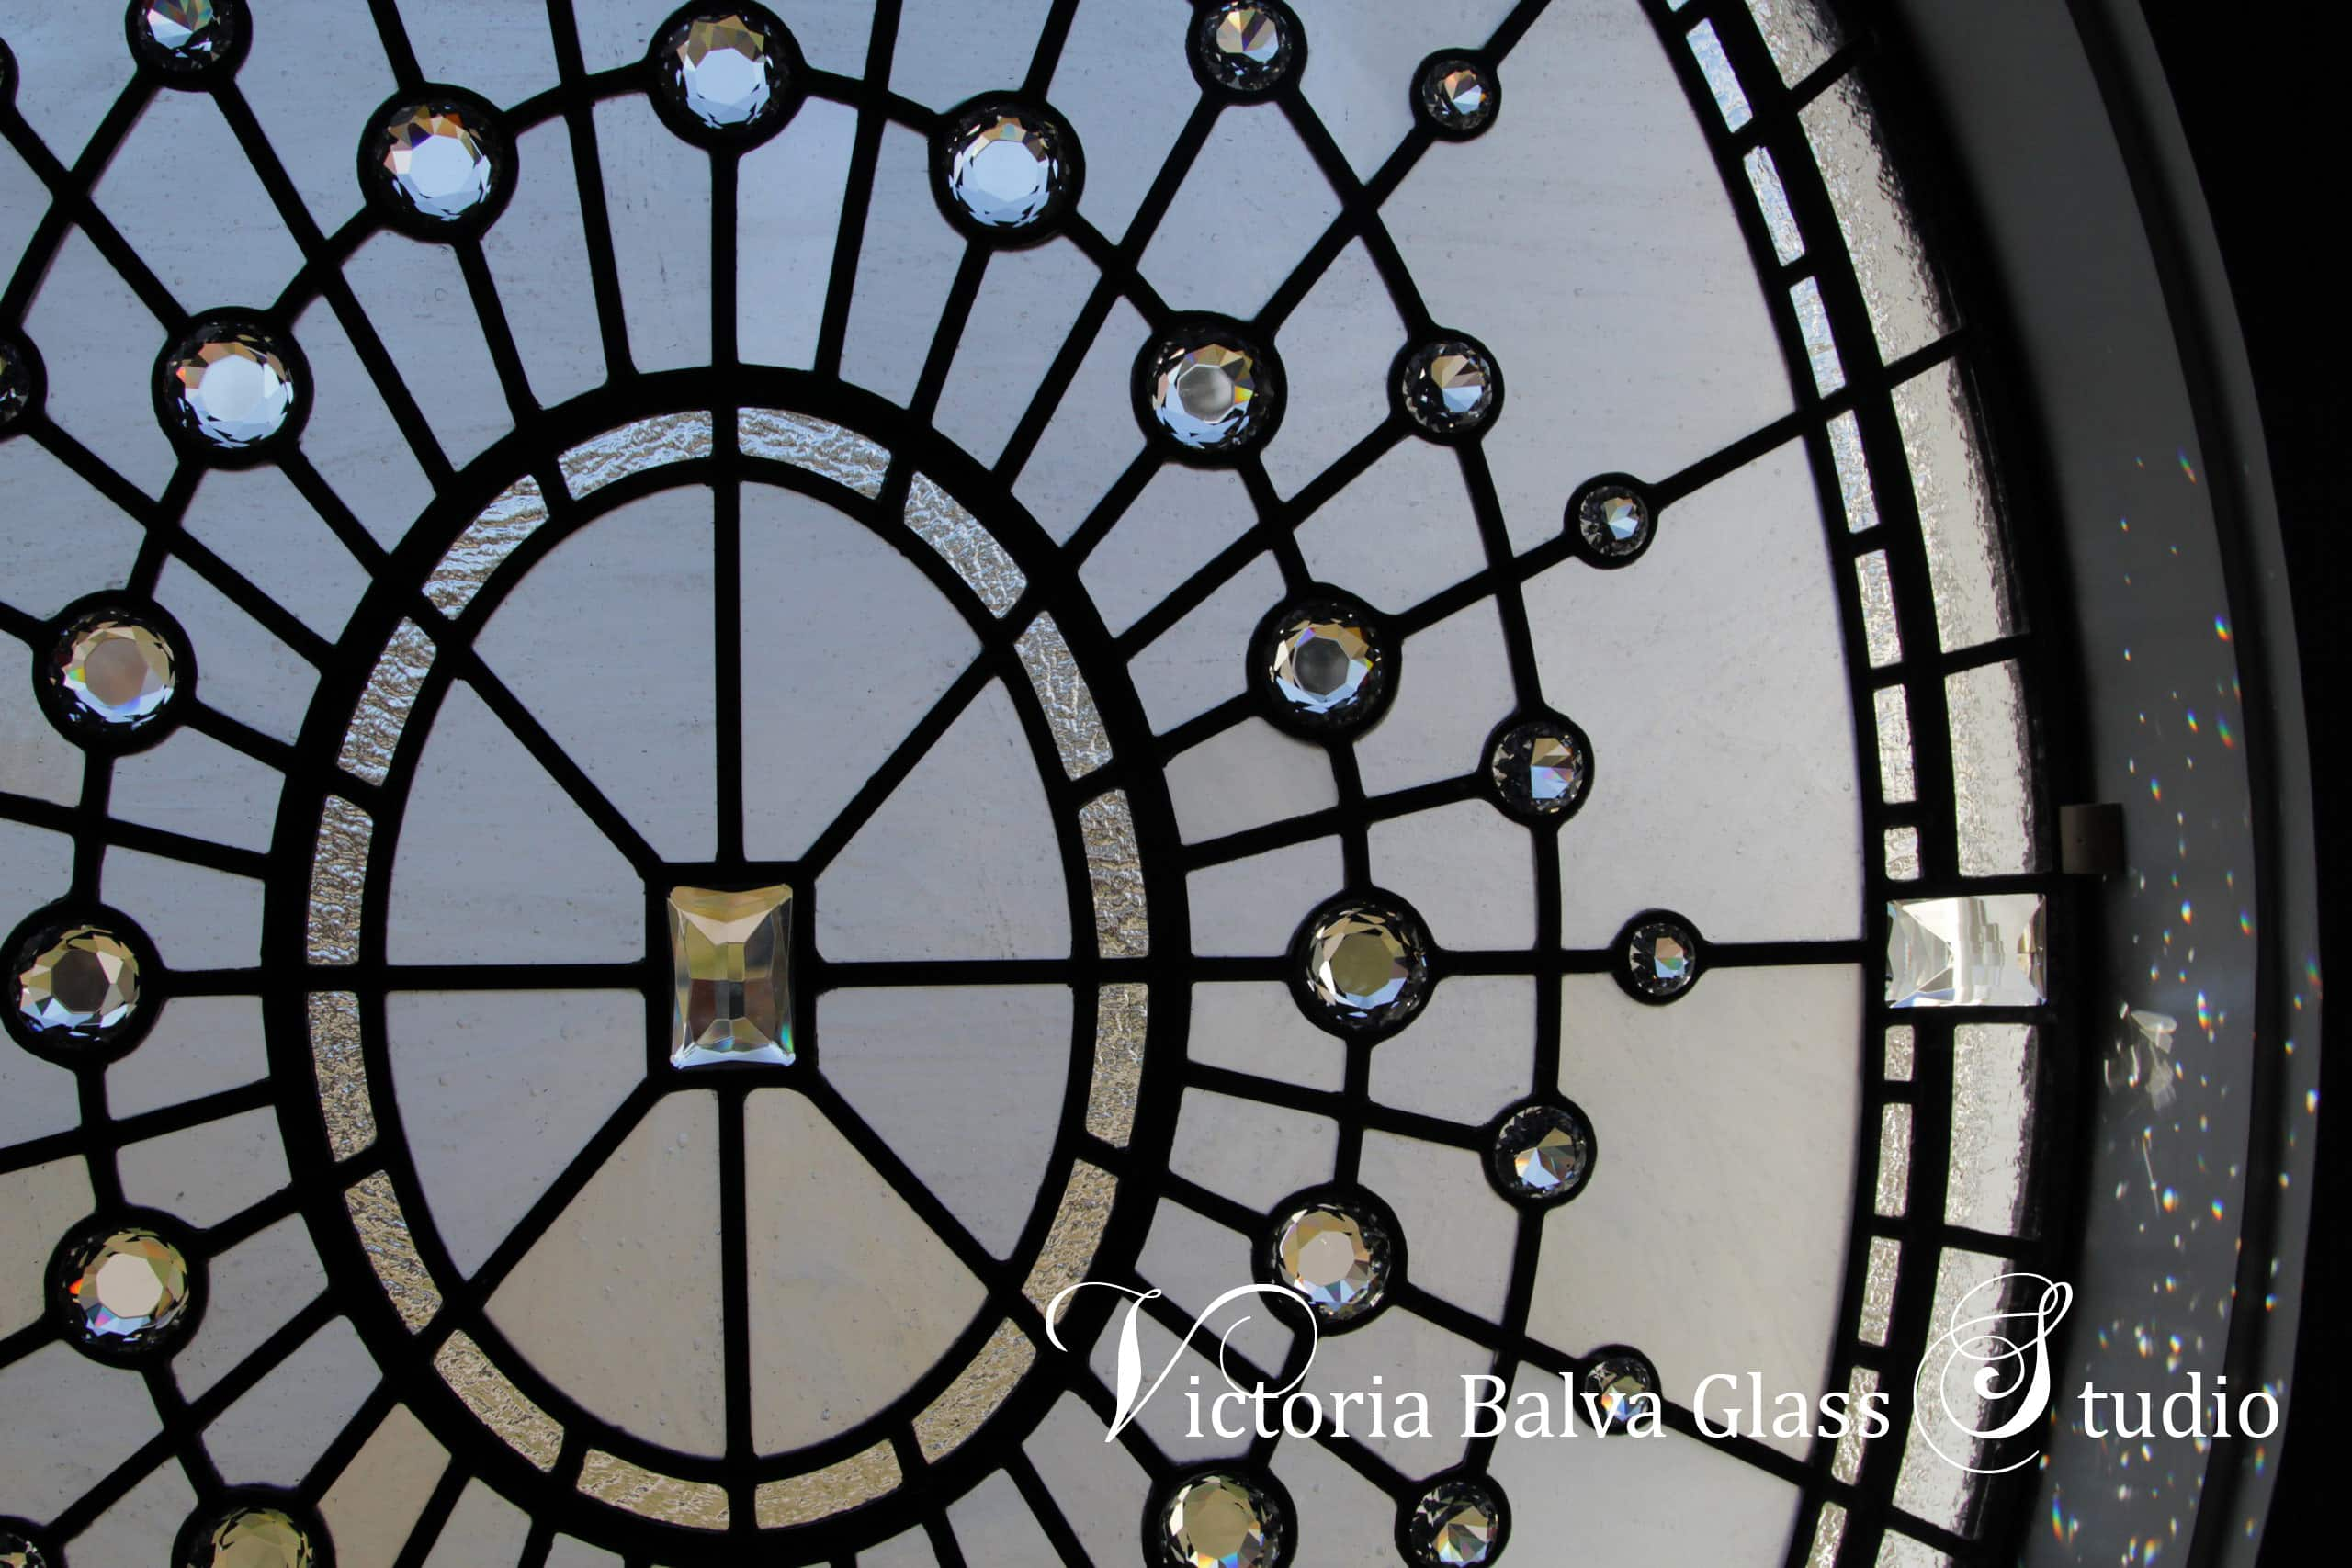 Large oval stained leaded glass window w crystal jewel accents for staircase of custom built residence in Washington DC. Glass diamonds refract the light into many tiny rainbows. Clear textured glass, various size glass diamonds. Stained leaded glass oval window design by glass artist Victoria Balva